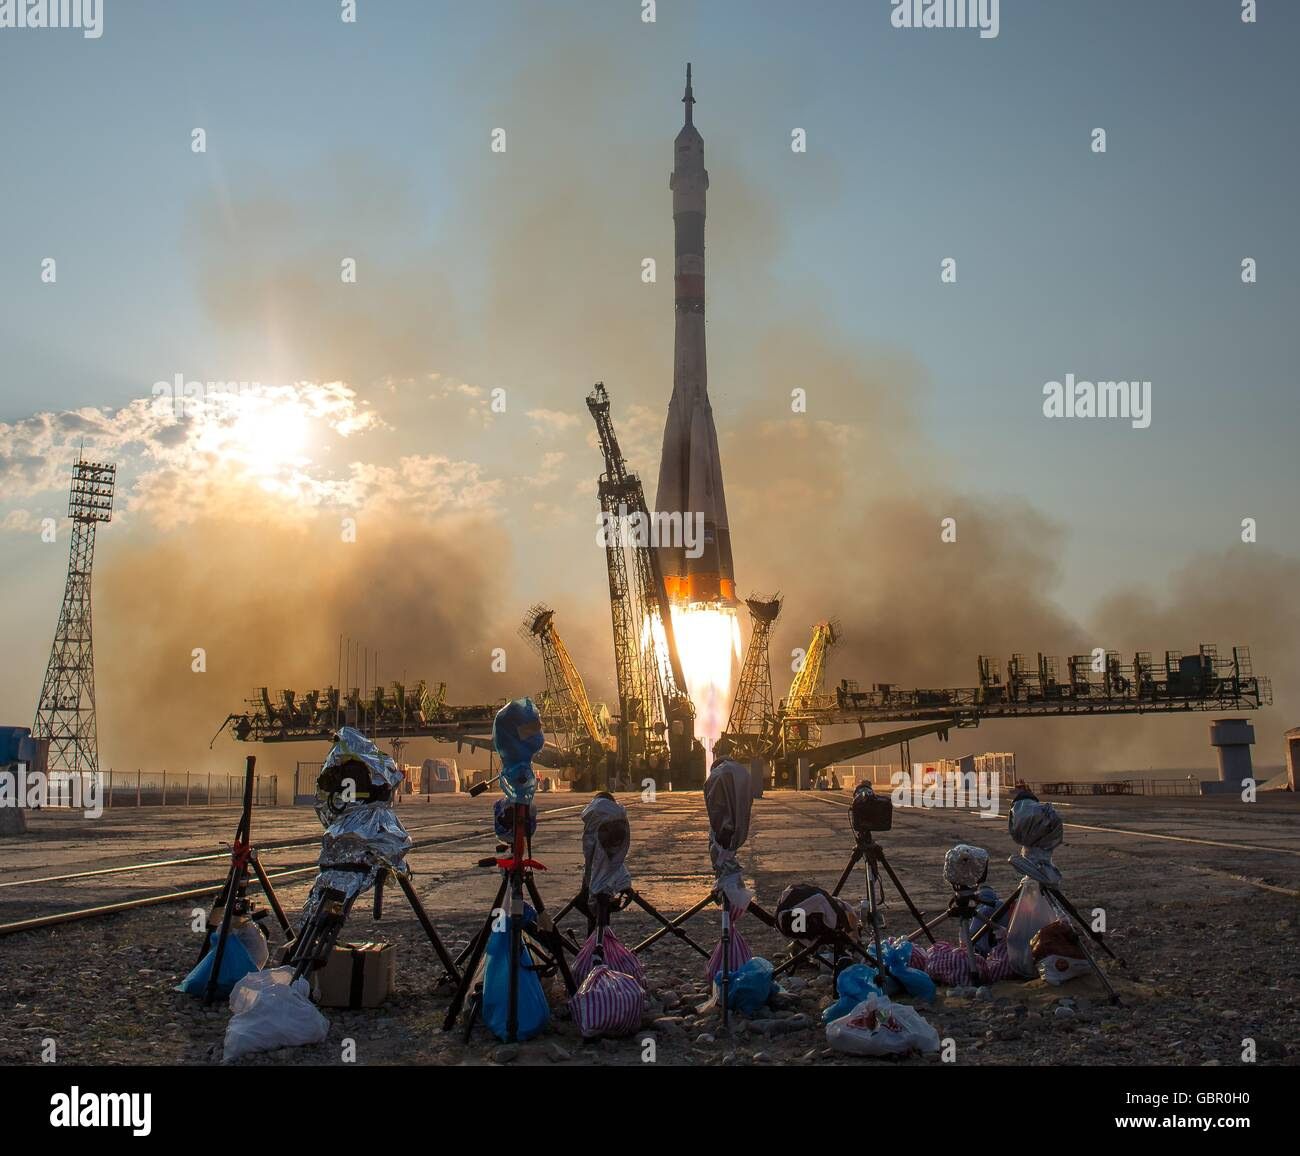 Baikonur Cosmodrome, Kazakhstan. 7th July, 2016. The Russian Soyuz MS-01 spacecraft launches to the International - Stock Image